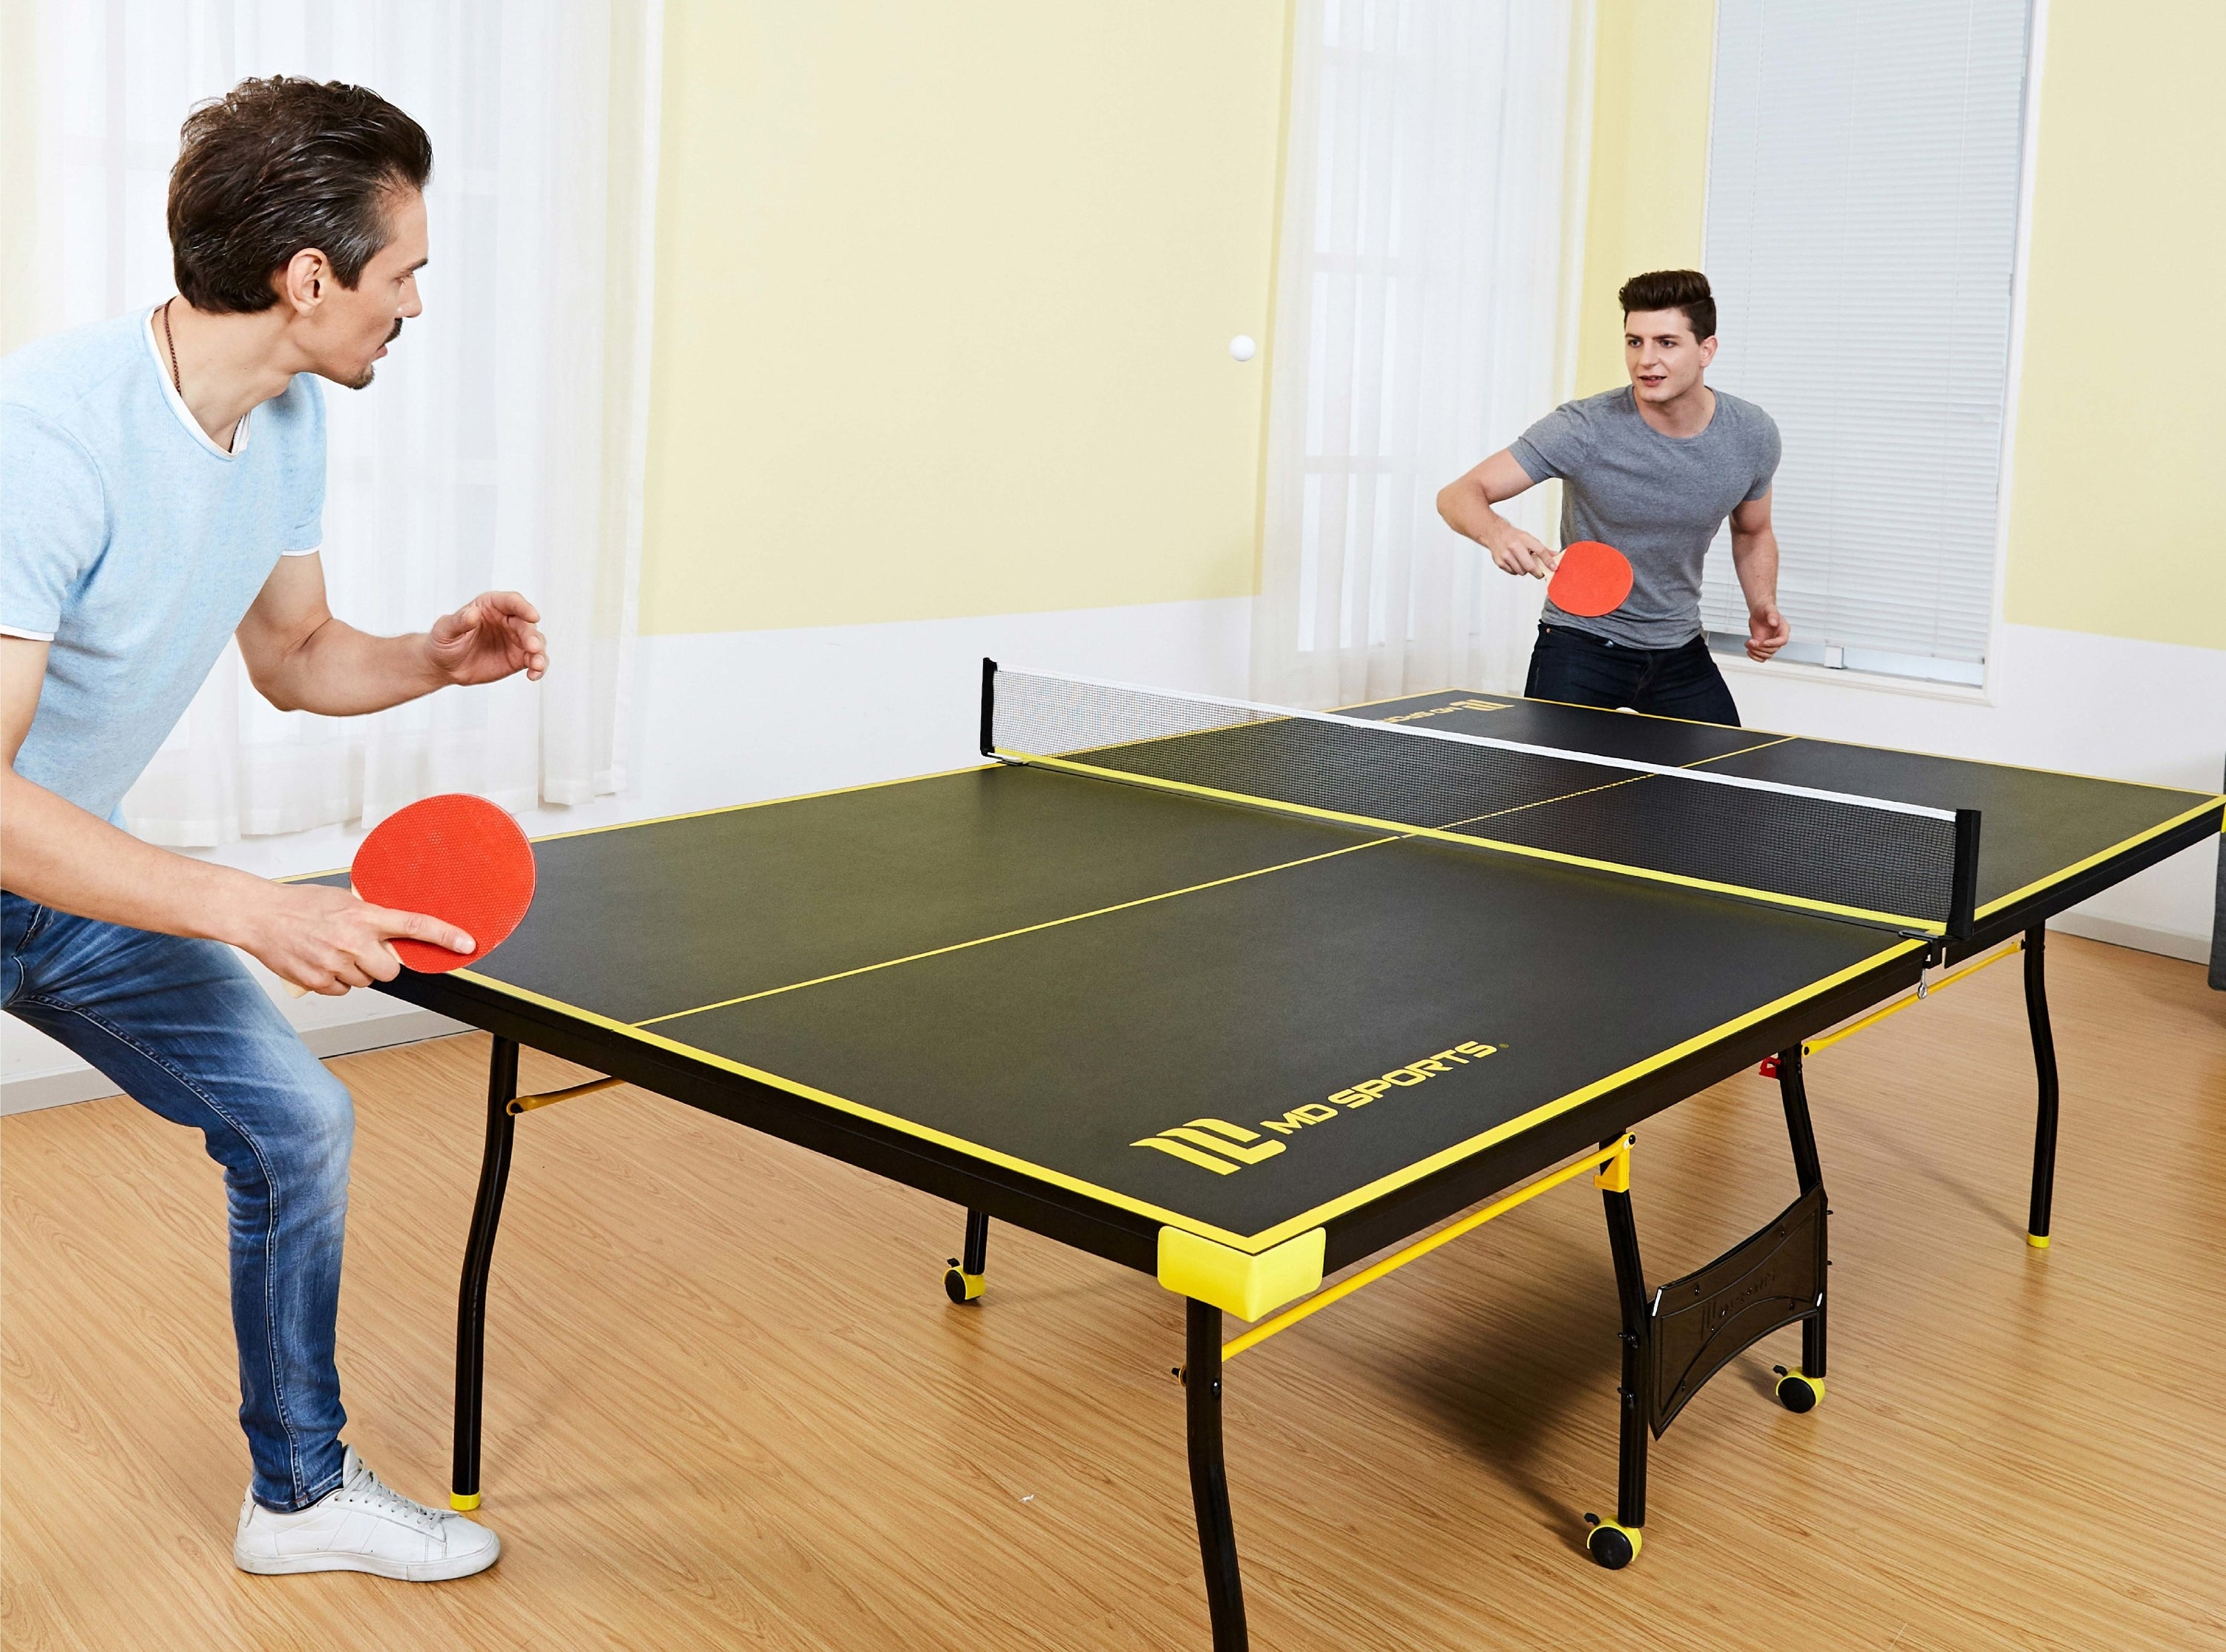 two people playing ping pong over a table tennis table